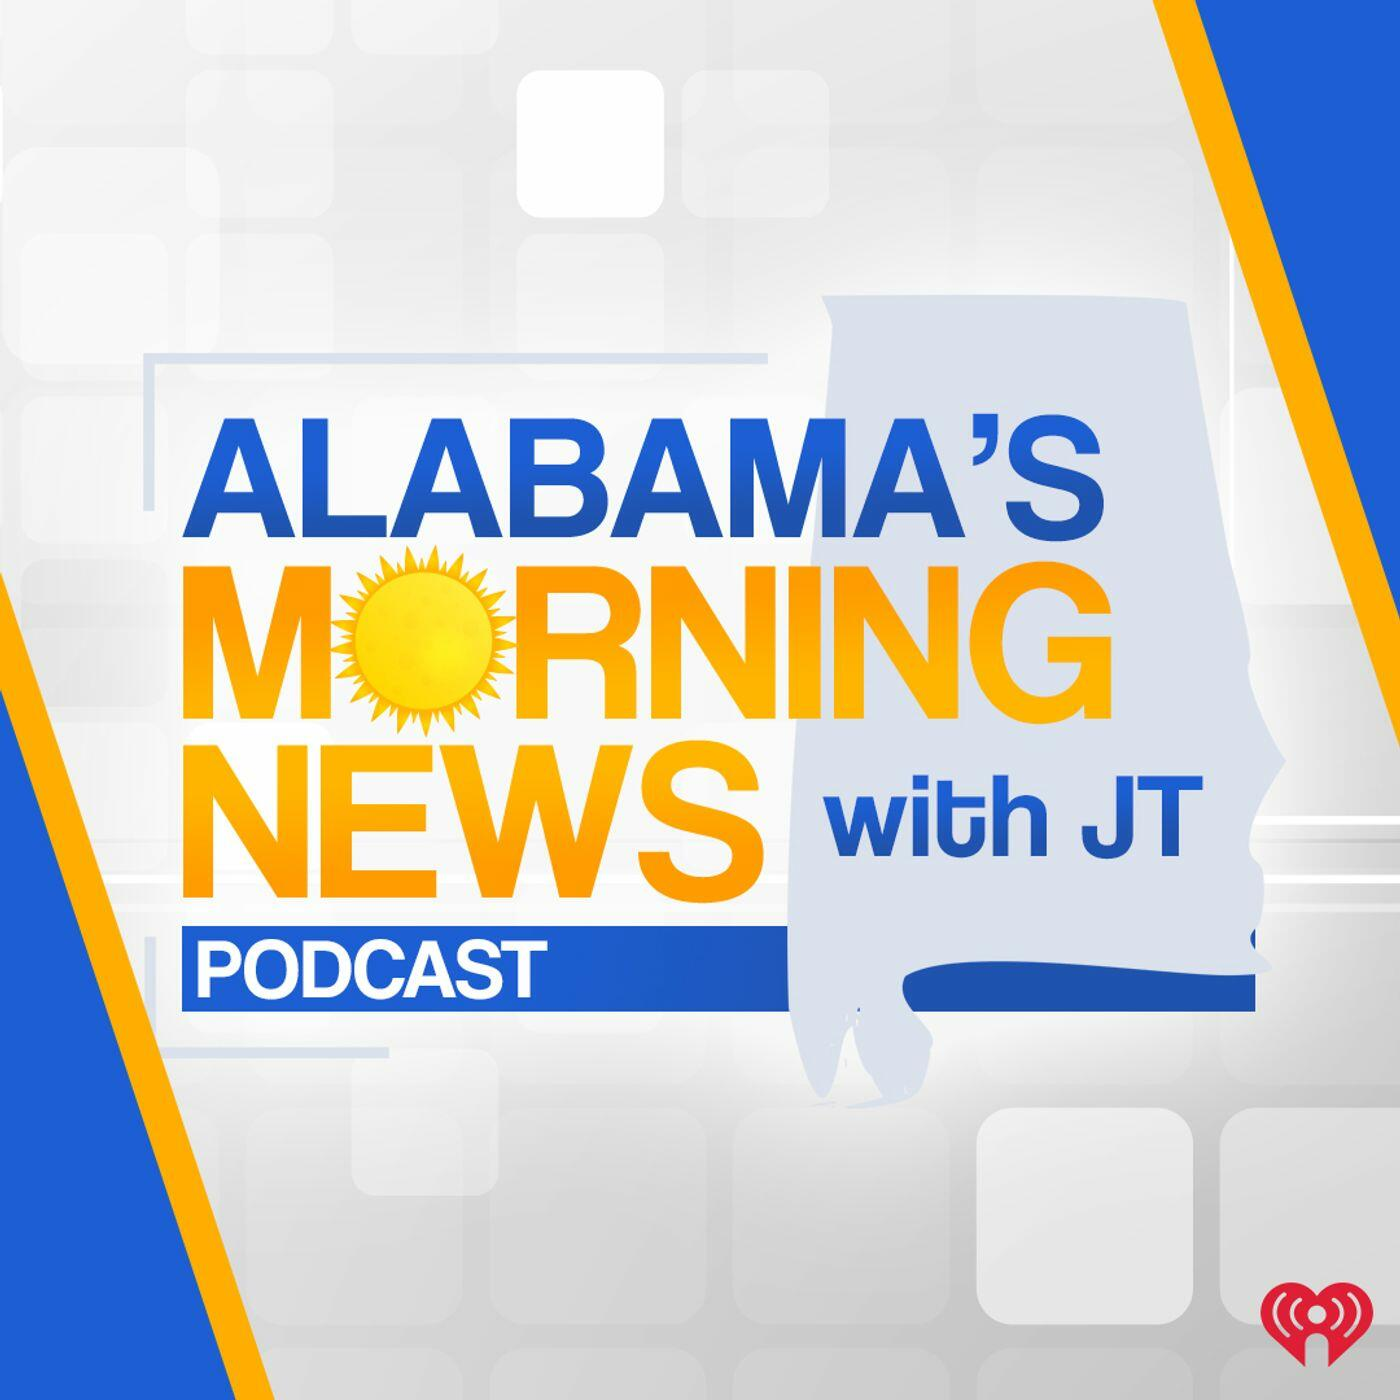 Listen to the Alabama's Morning News with JT Episode - Judge Roy Moore Answers Back to Ilhan Omar on iHeartRadio | iHeartRadio